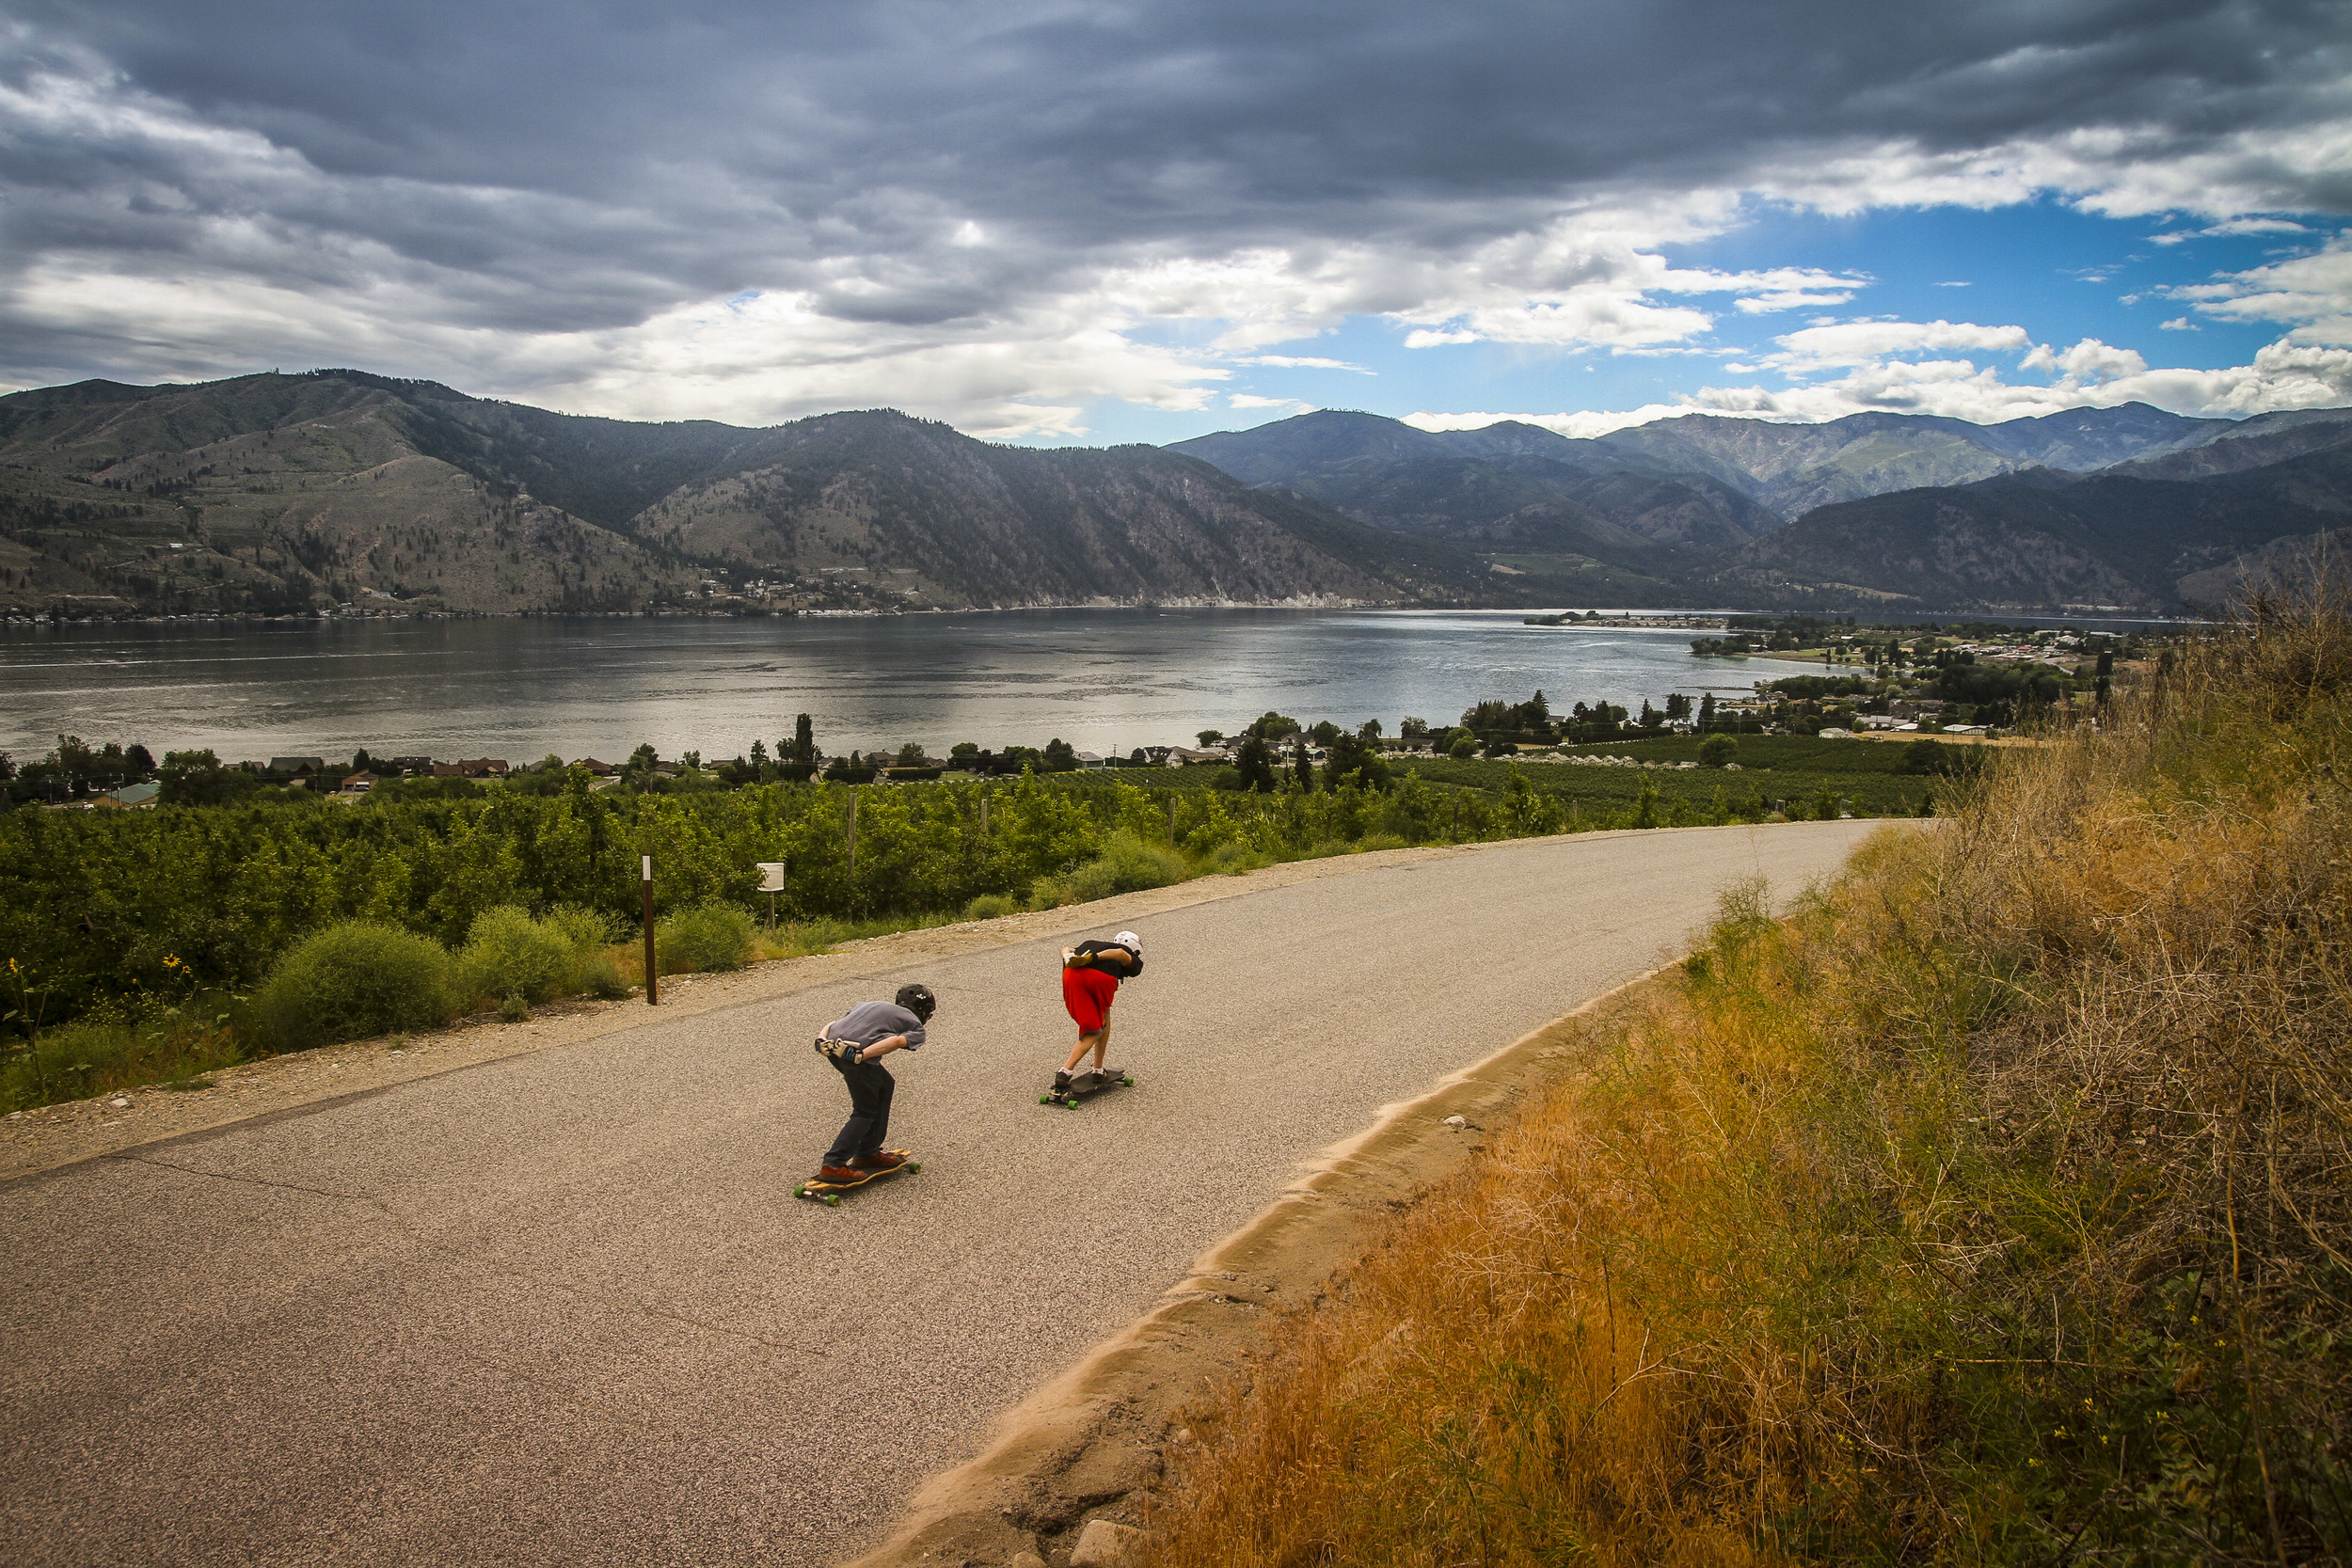 Jake and Kyle cruising down a hill in Chelan, WA